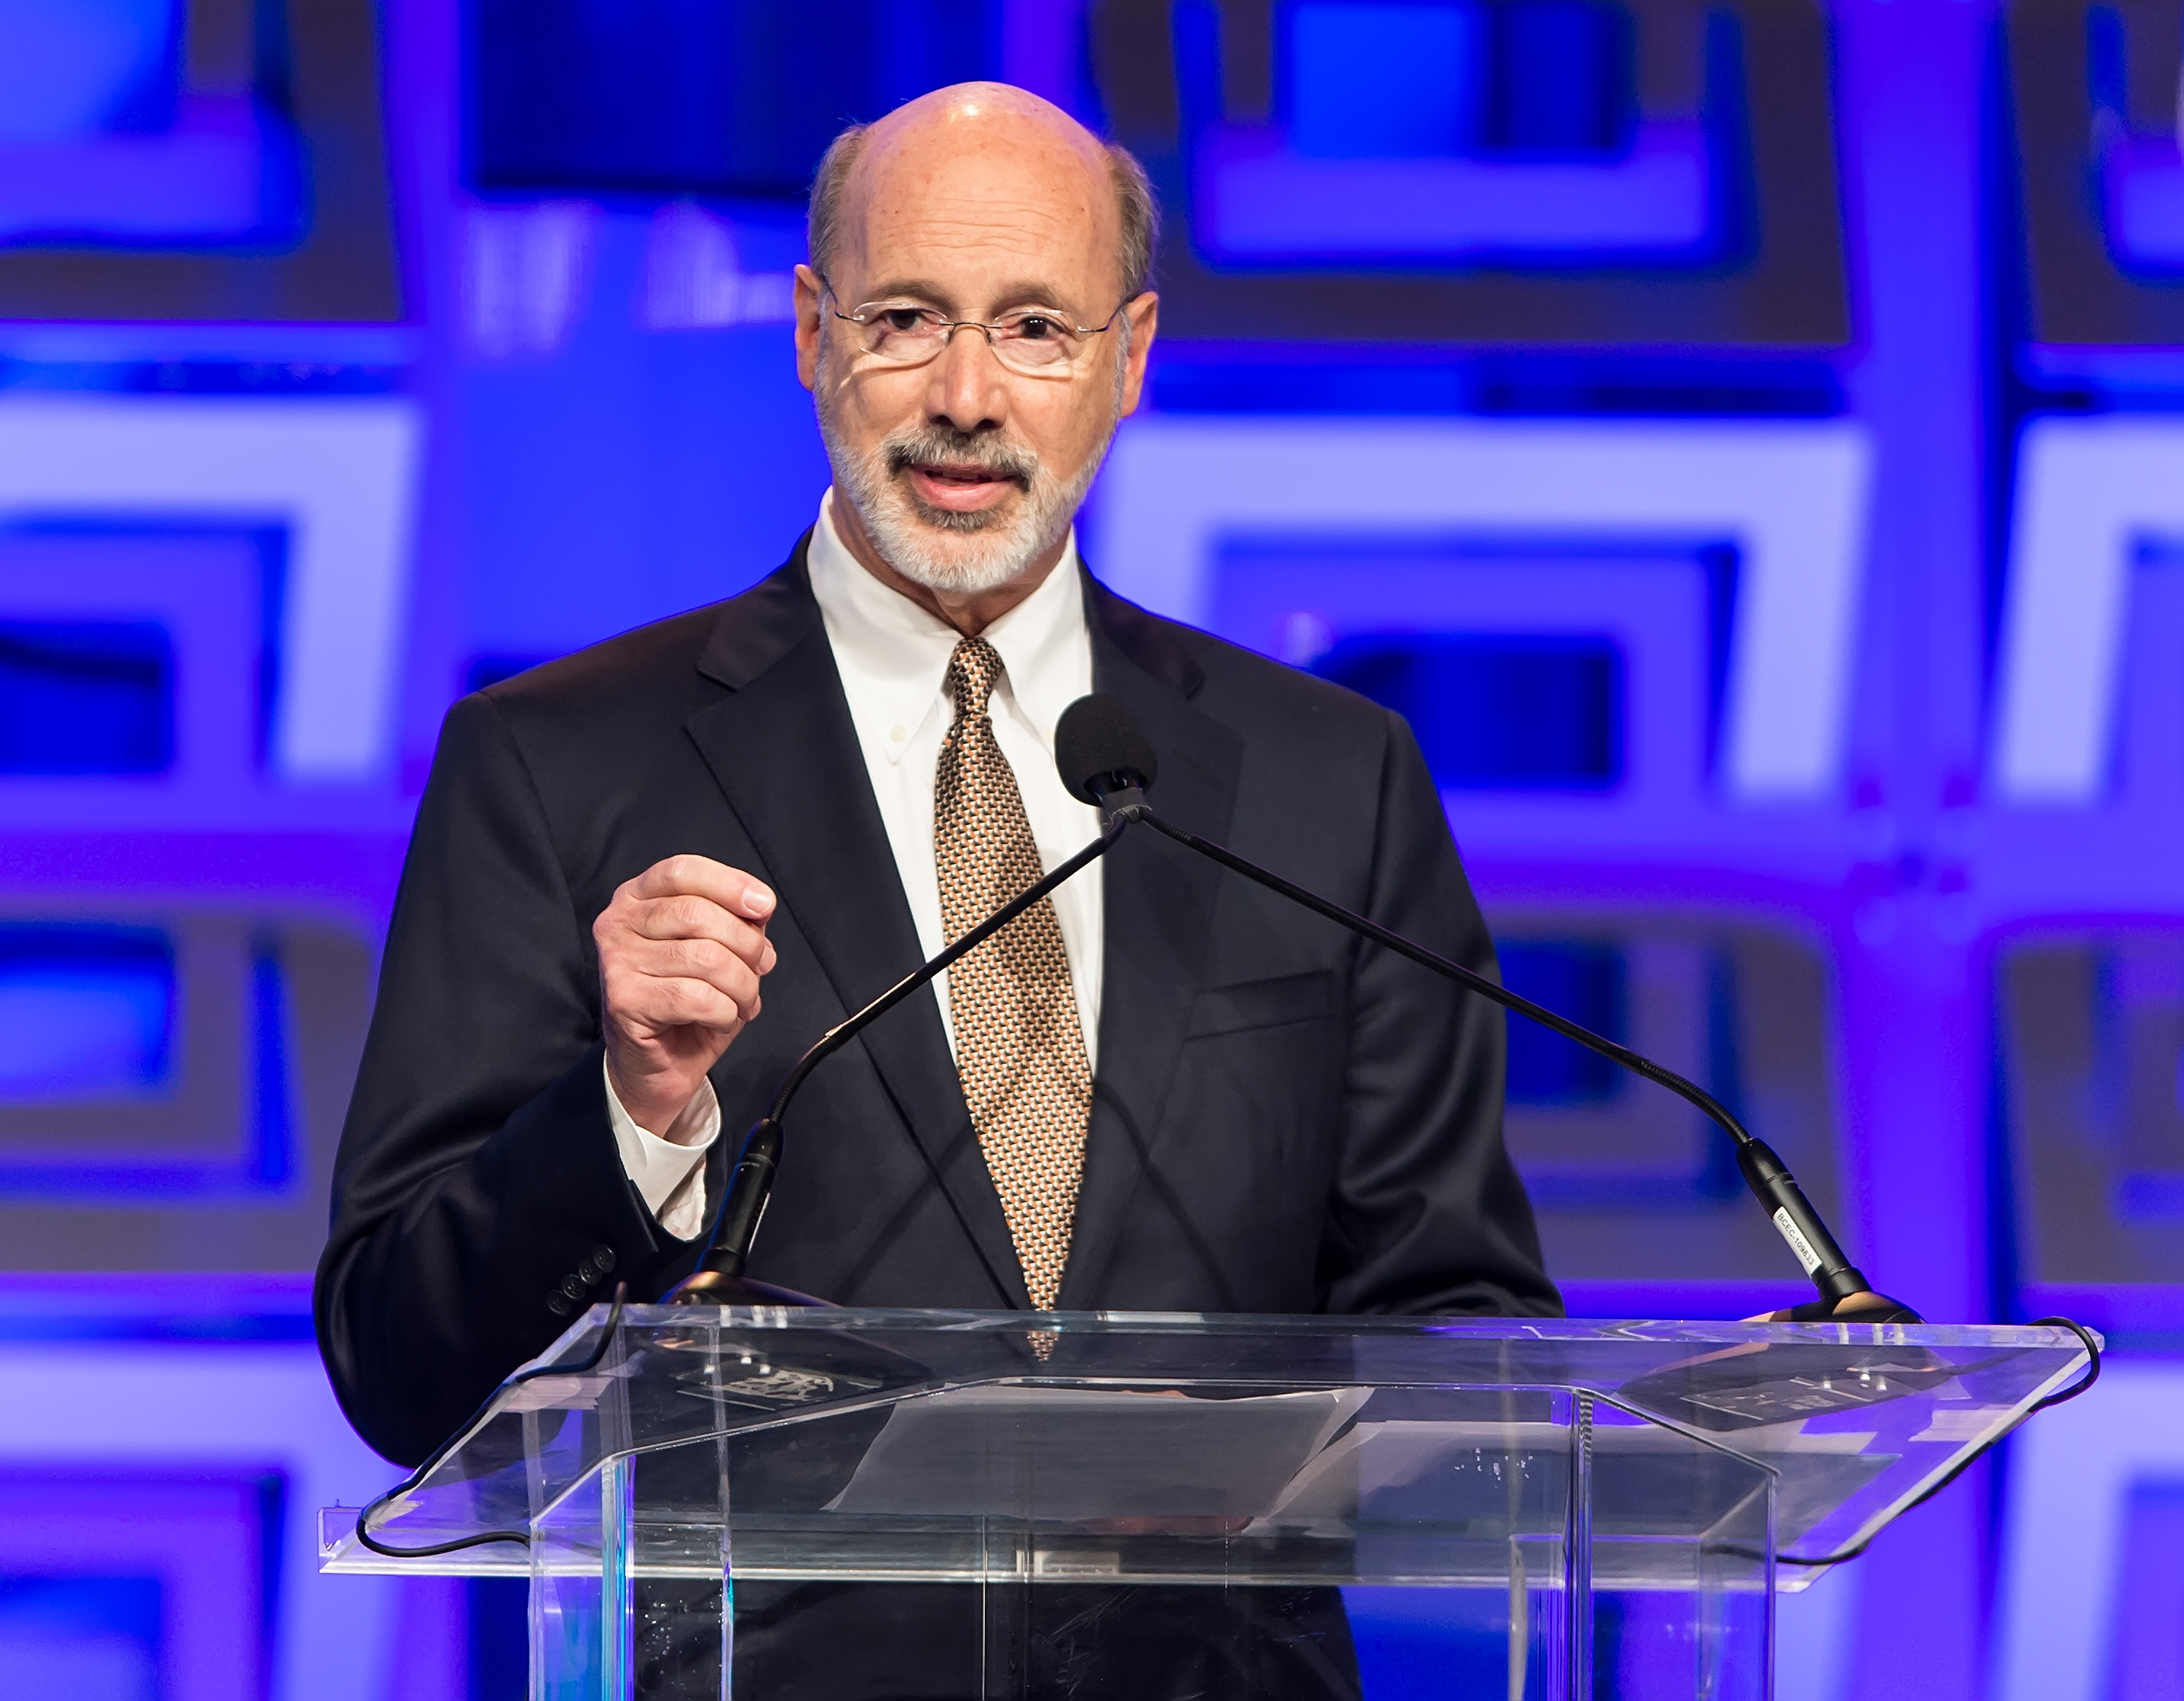 Governor of Pennsylvania Tom Wolf speaks during the Pennsylvania Conference For Women 2015 at on Nov.19, 2015.